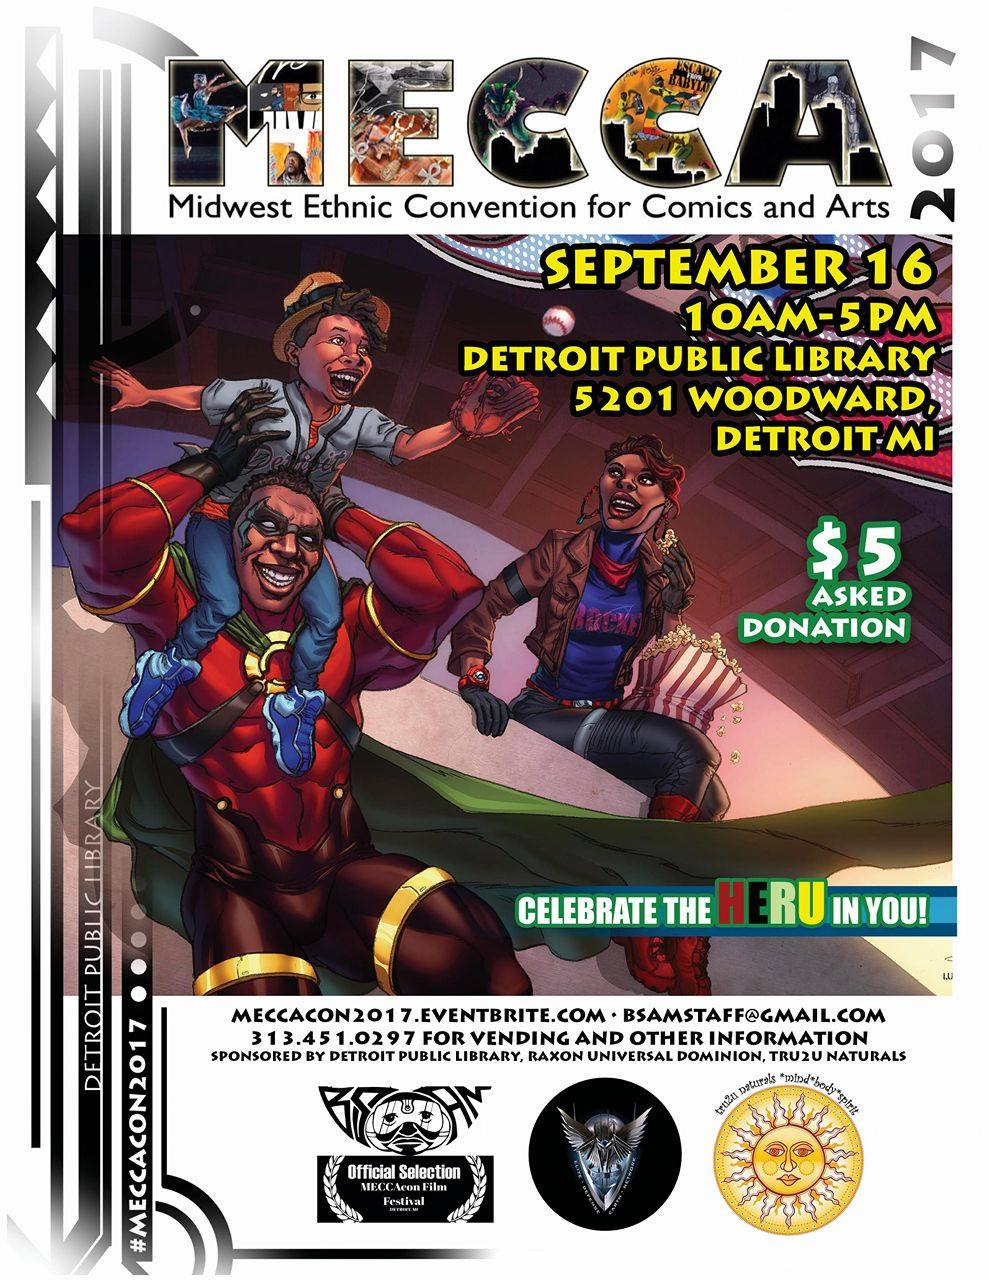 The Midwest Ethnic Convention for Comics and Art, or MECCAcon, is an annual convention which features young comic and film creators from diverse backgrounds presenting work based on their diverse experiences. The primary mission of MECCAcon is to connect with younger artists and show them that not all heroes look the same, in fact, some look just like them! MECCAcon will highlight comics, international/independent film, afrofuturism, science fiction, steampunk, fine art, music, graffiti, dj artists, handmade artisans, african belly dance, urban gardening, fashion, african martial arts, and more! On Friday September 15th, one day prior to the main convention happening at the Detroit Public Library, stop in at Vault of Midnight in Detroit for an exclusive signing with some of the most prominent comic creators from MECCAcon, including: 4:00 pm: Miguel Blanco and Javier Cruz Minnick 5:00 pm: Jahani Kwatre and Keithan Jones 6:00 pm: N. Steven Harris and Will Focus Do not miss out on the unique experience of meeting these amazing young talents working on some of the most cutting edge comics today!